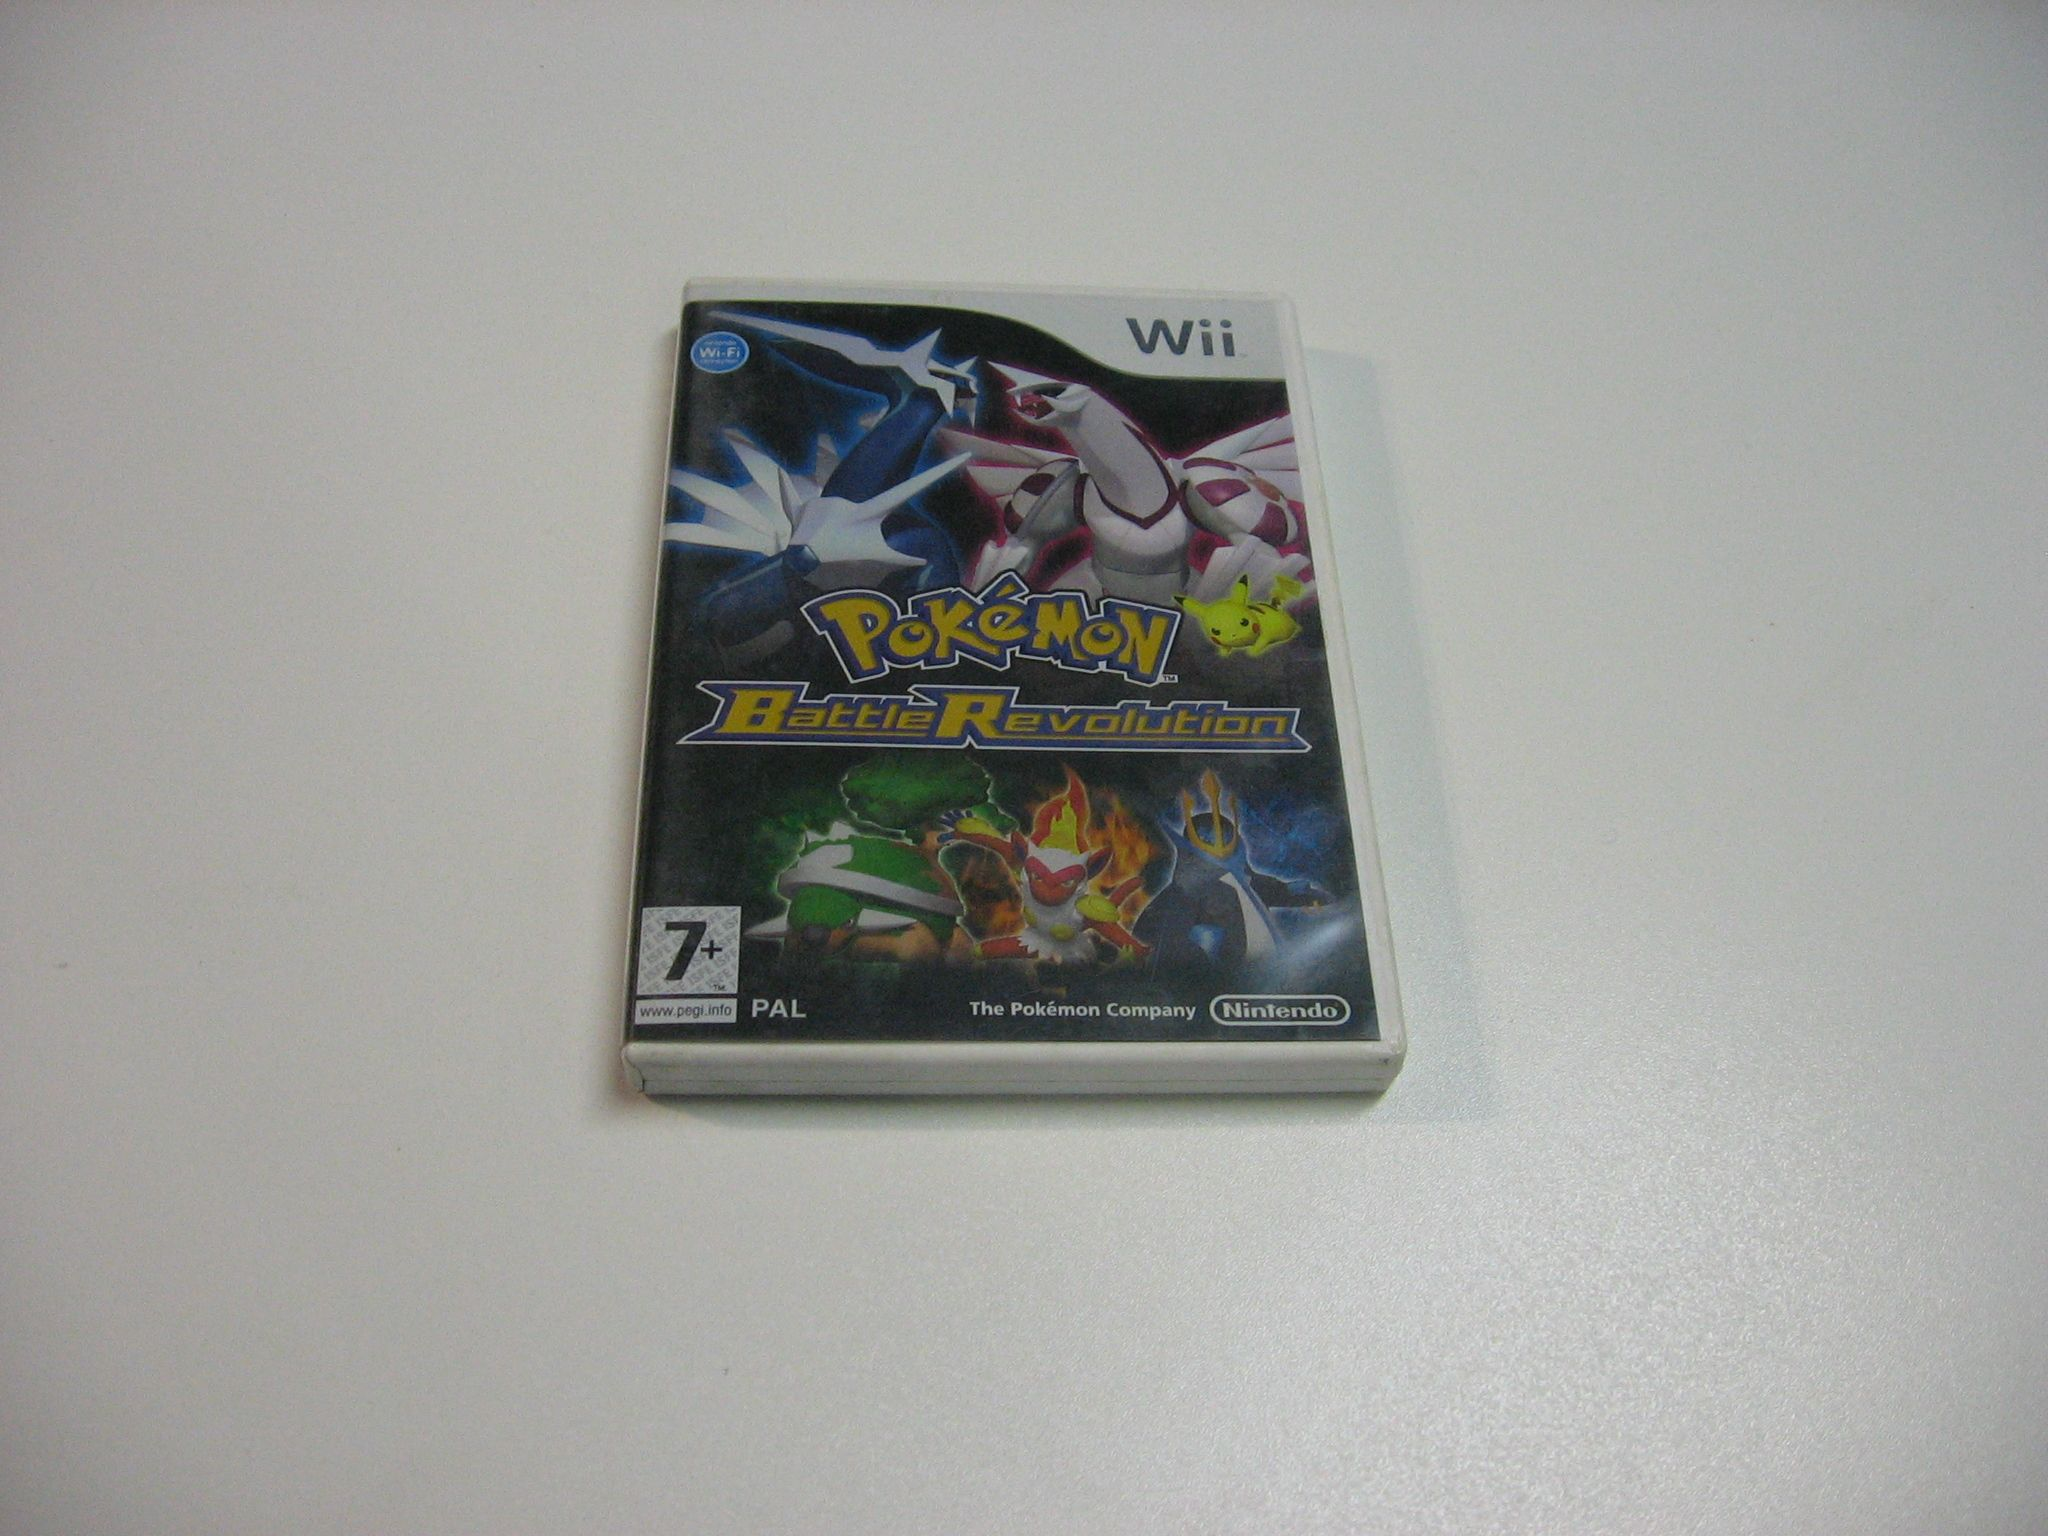 Pokemon Battle Revolution Gra Nintendo Wii Opole 0789 Nintendo Wii Pokemon